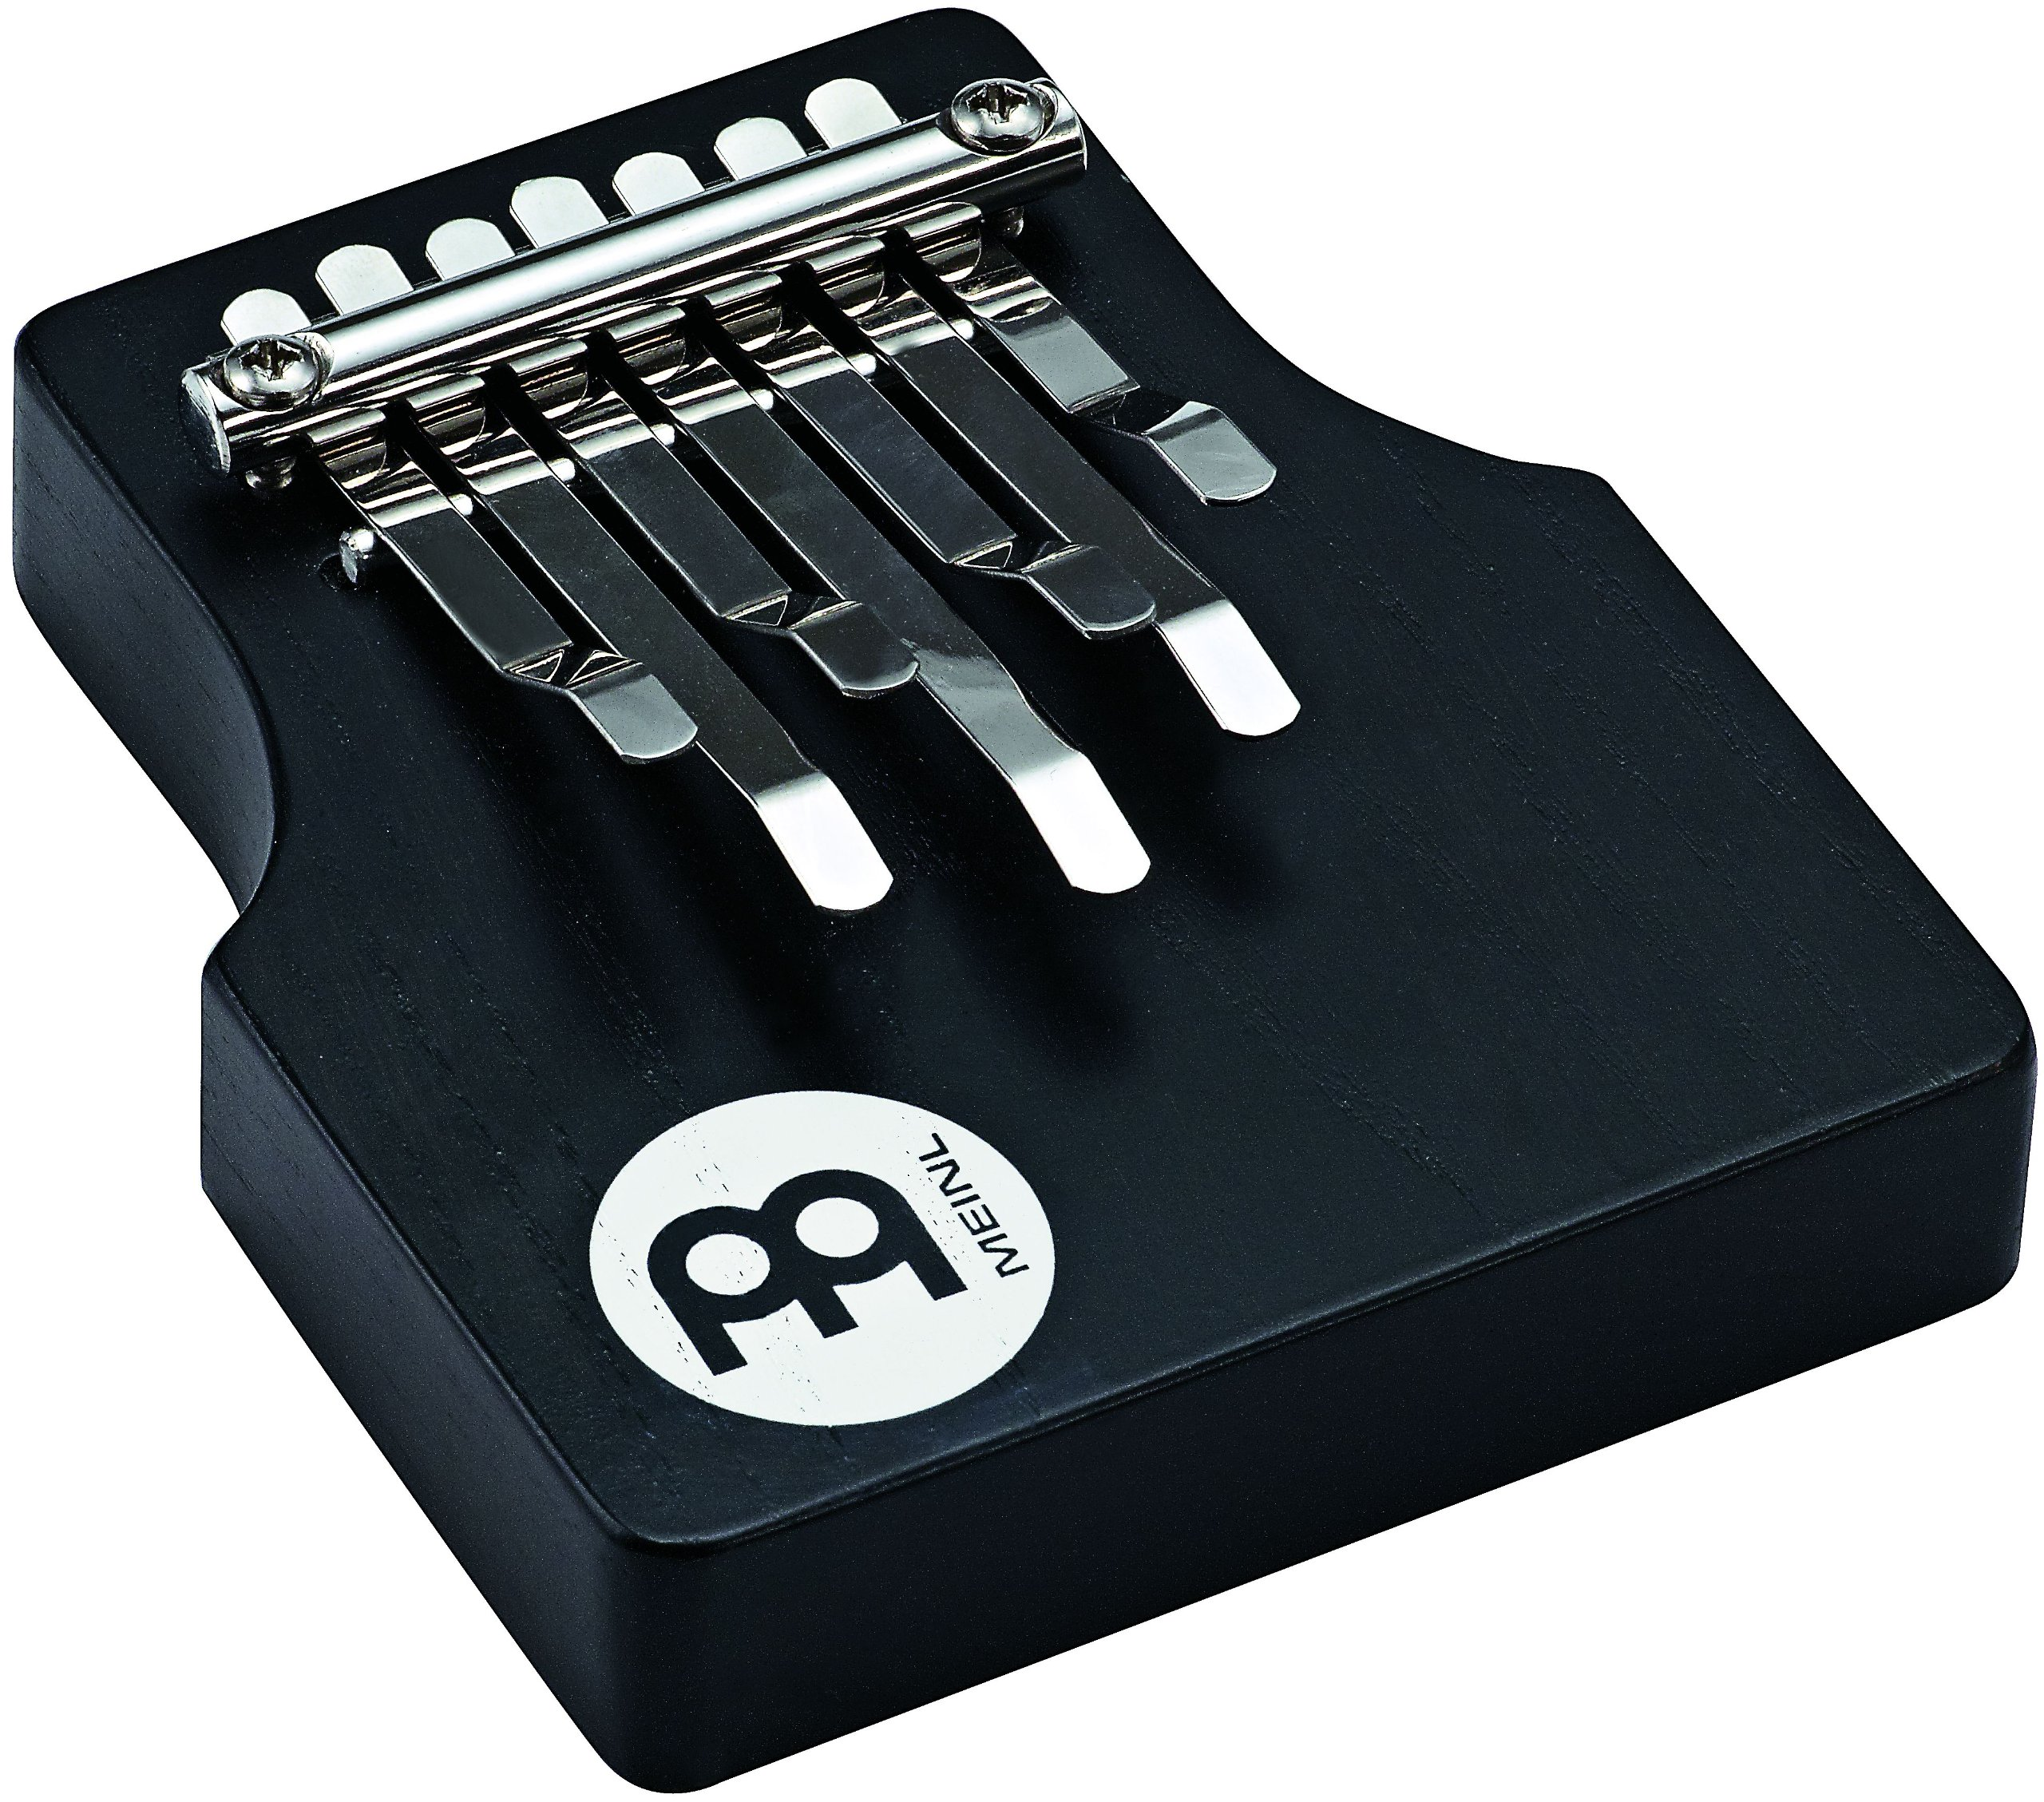 Meinl Percussion KA7-M-BK Medium Kalimba with Extra Wide Tongues -, Black by Meinl Percussion